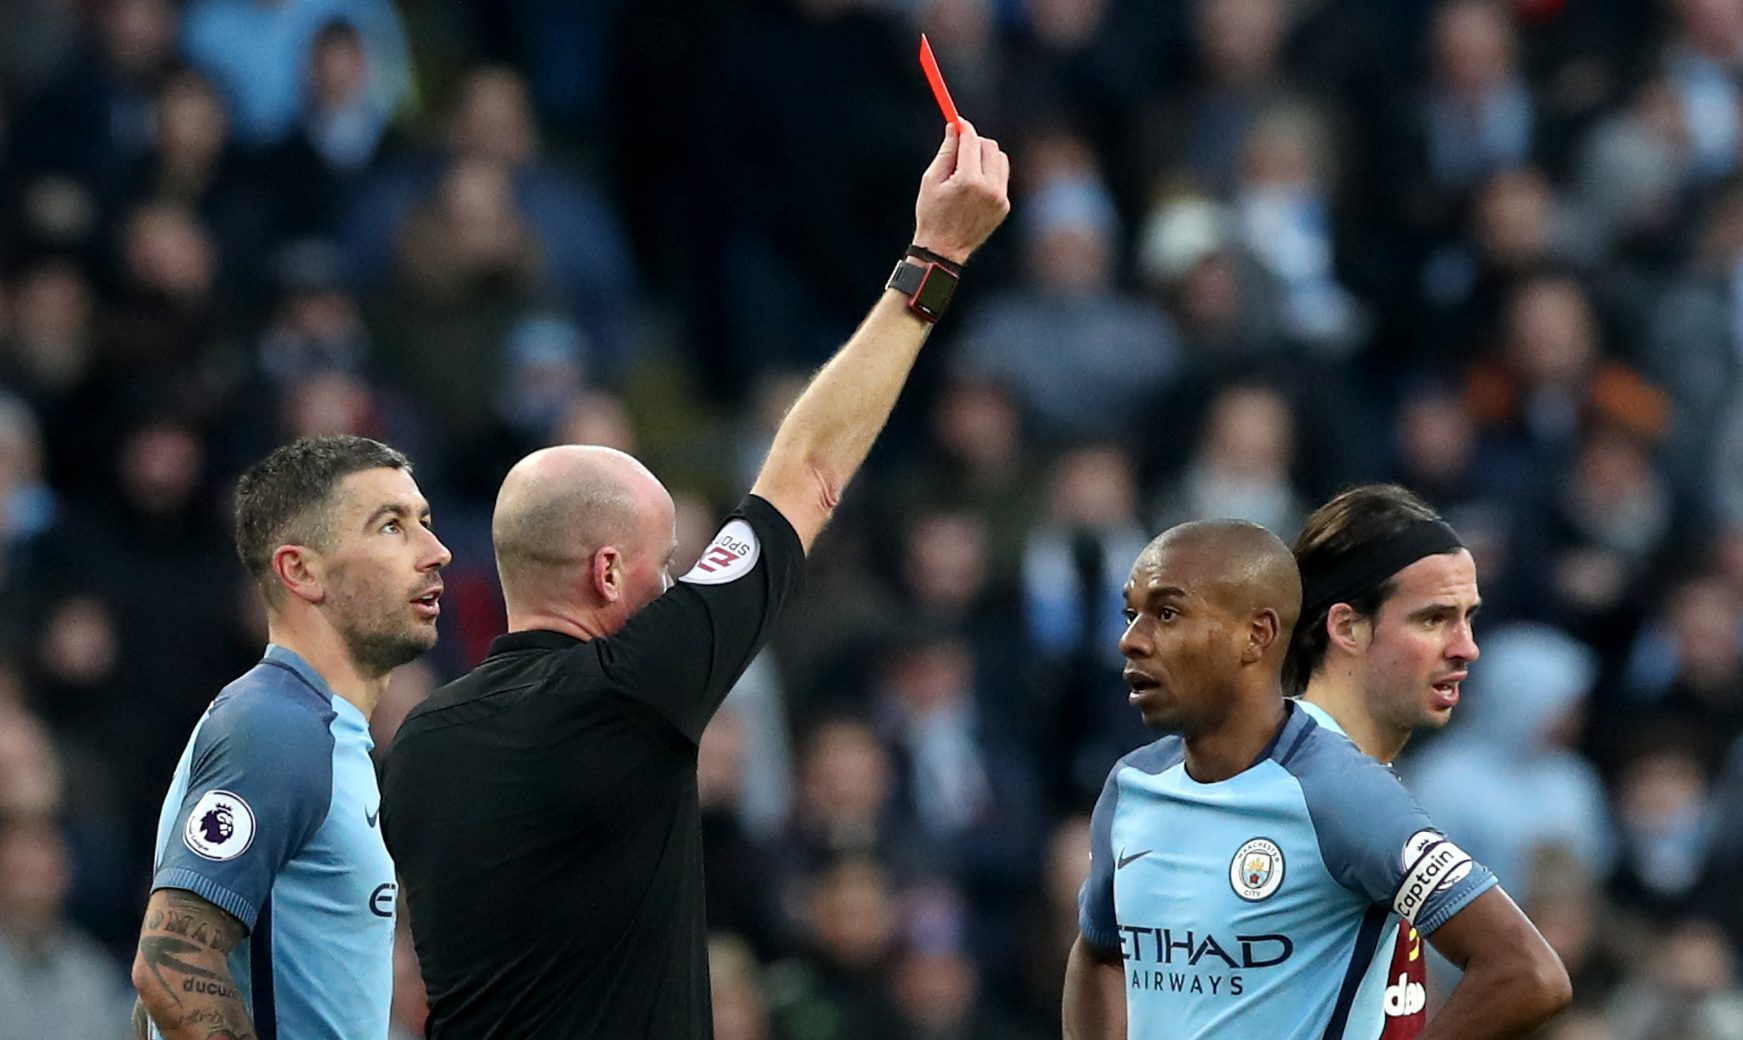 Manchester City's Fernandinho is shown a red card earlier this year (Martin Rickett/PA Wire)